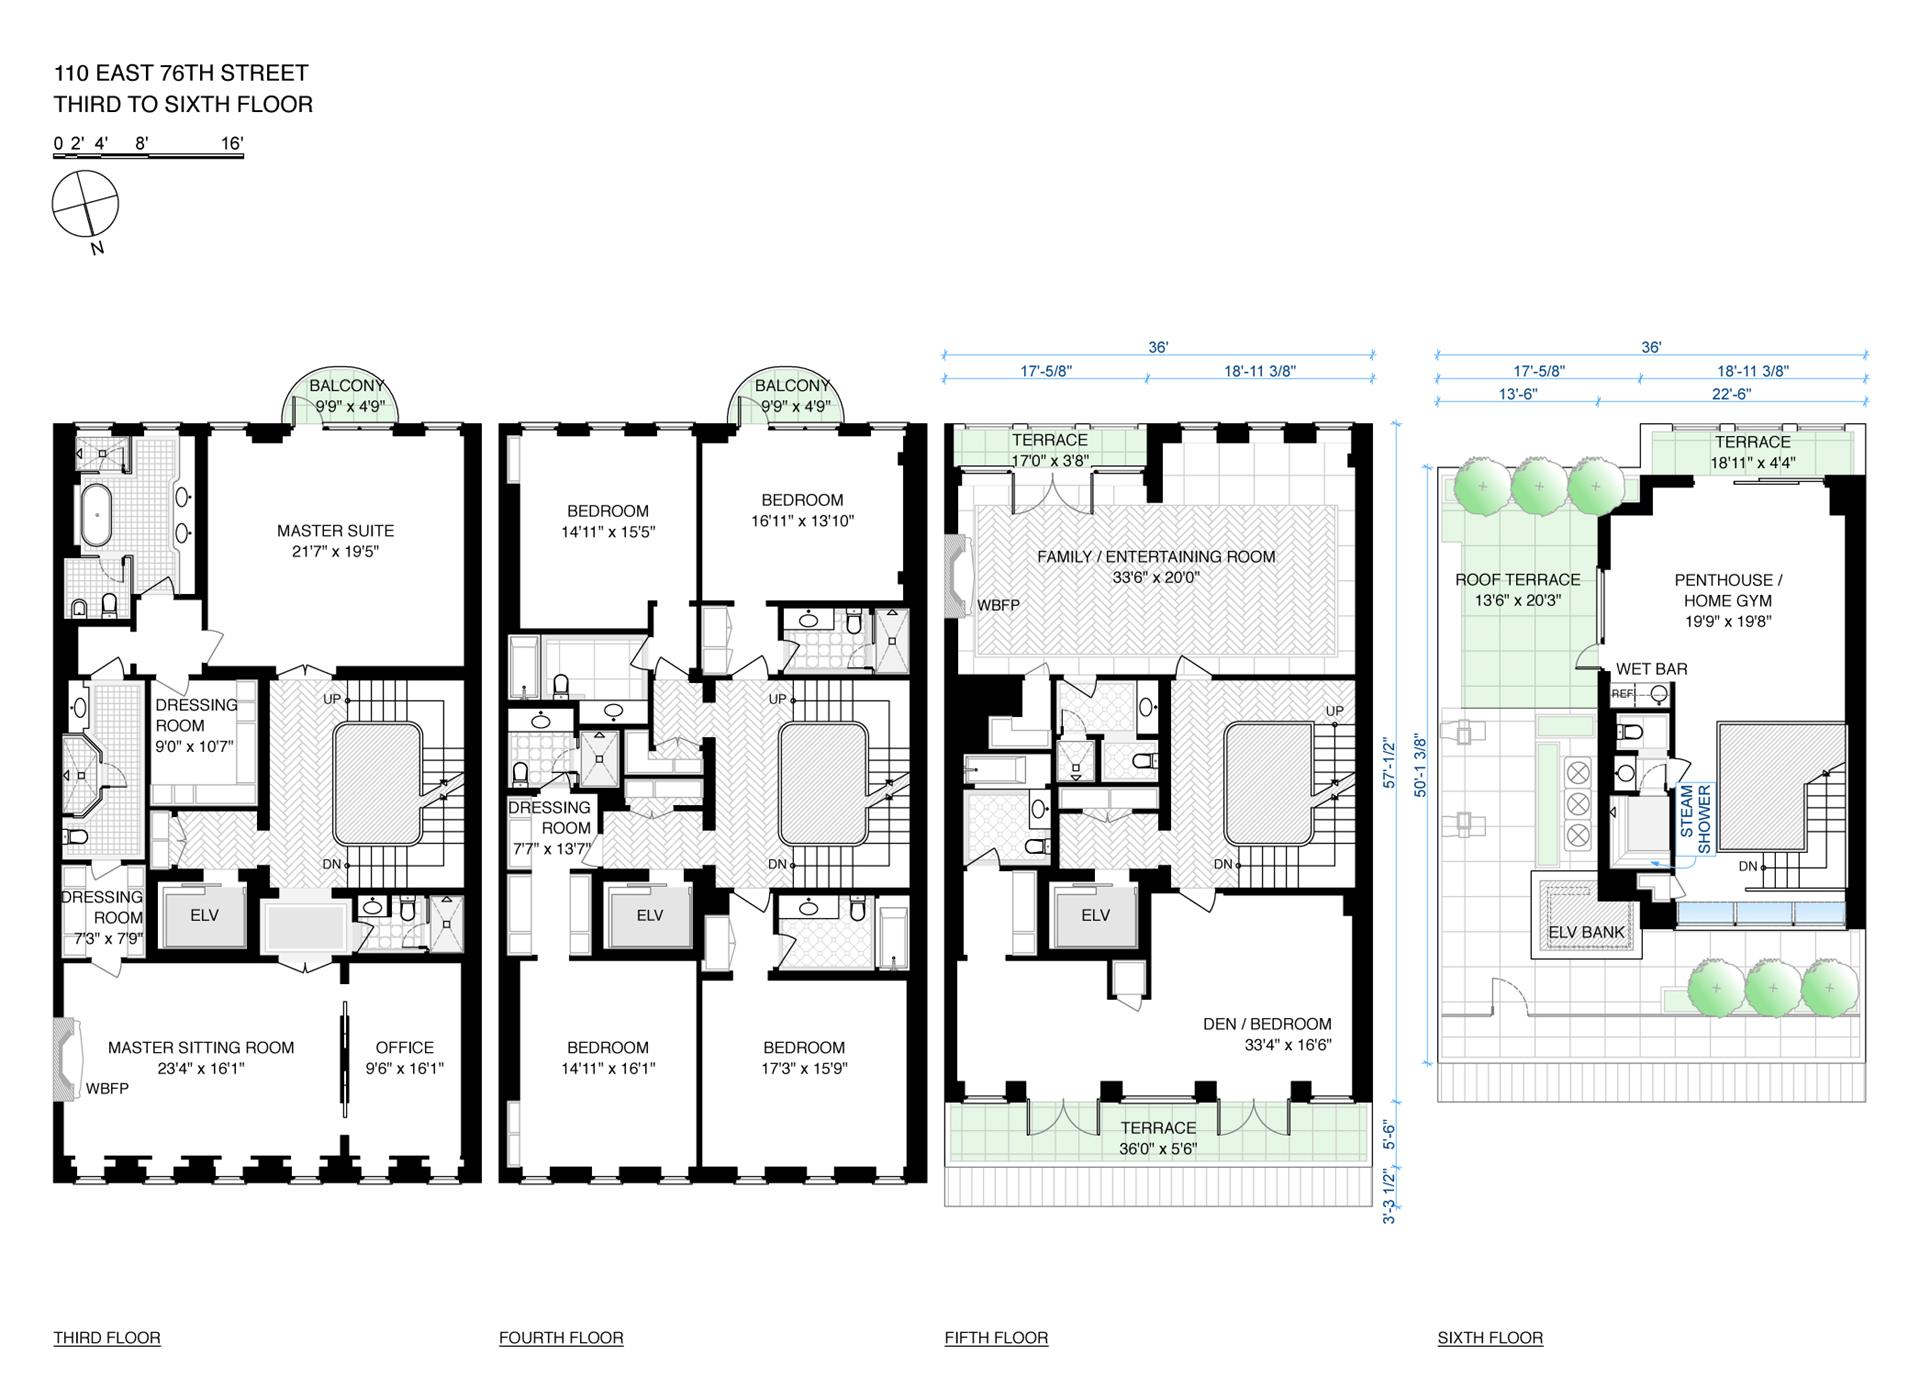 Floor plan of 110 East 76th St - Upper East Side, New York